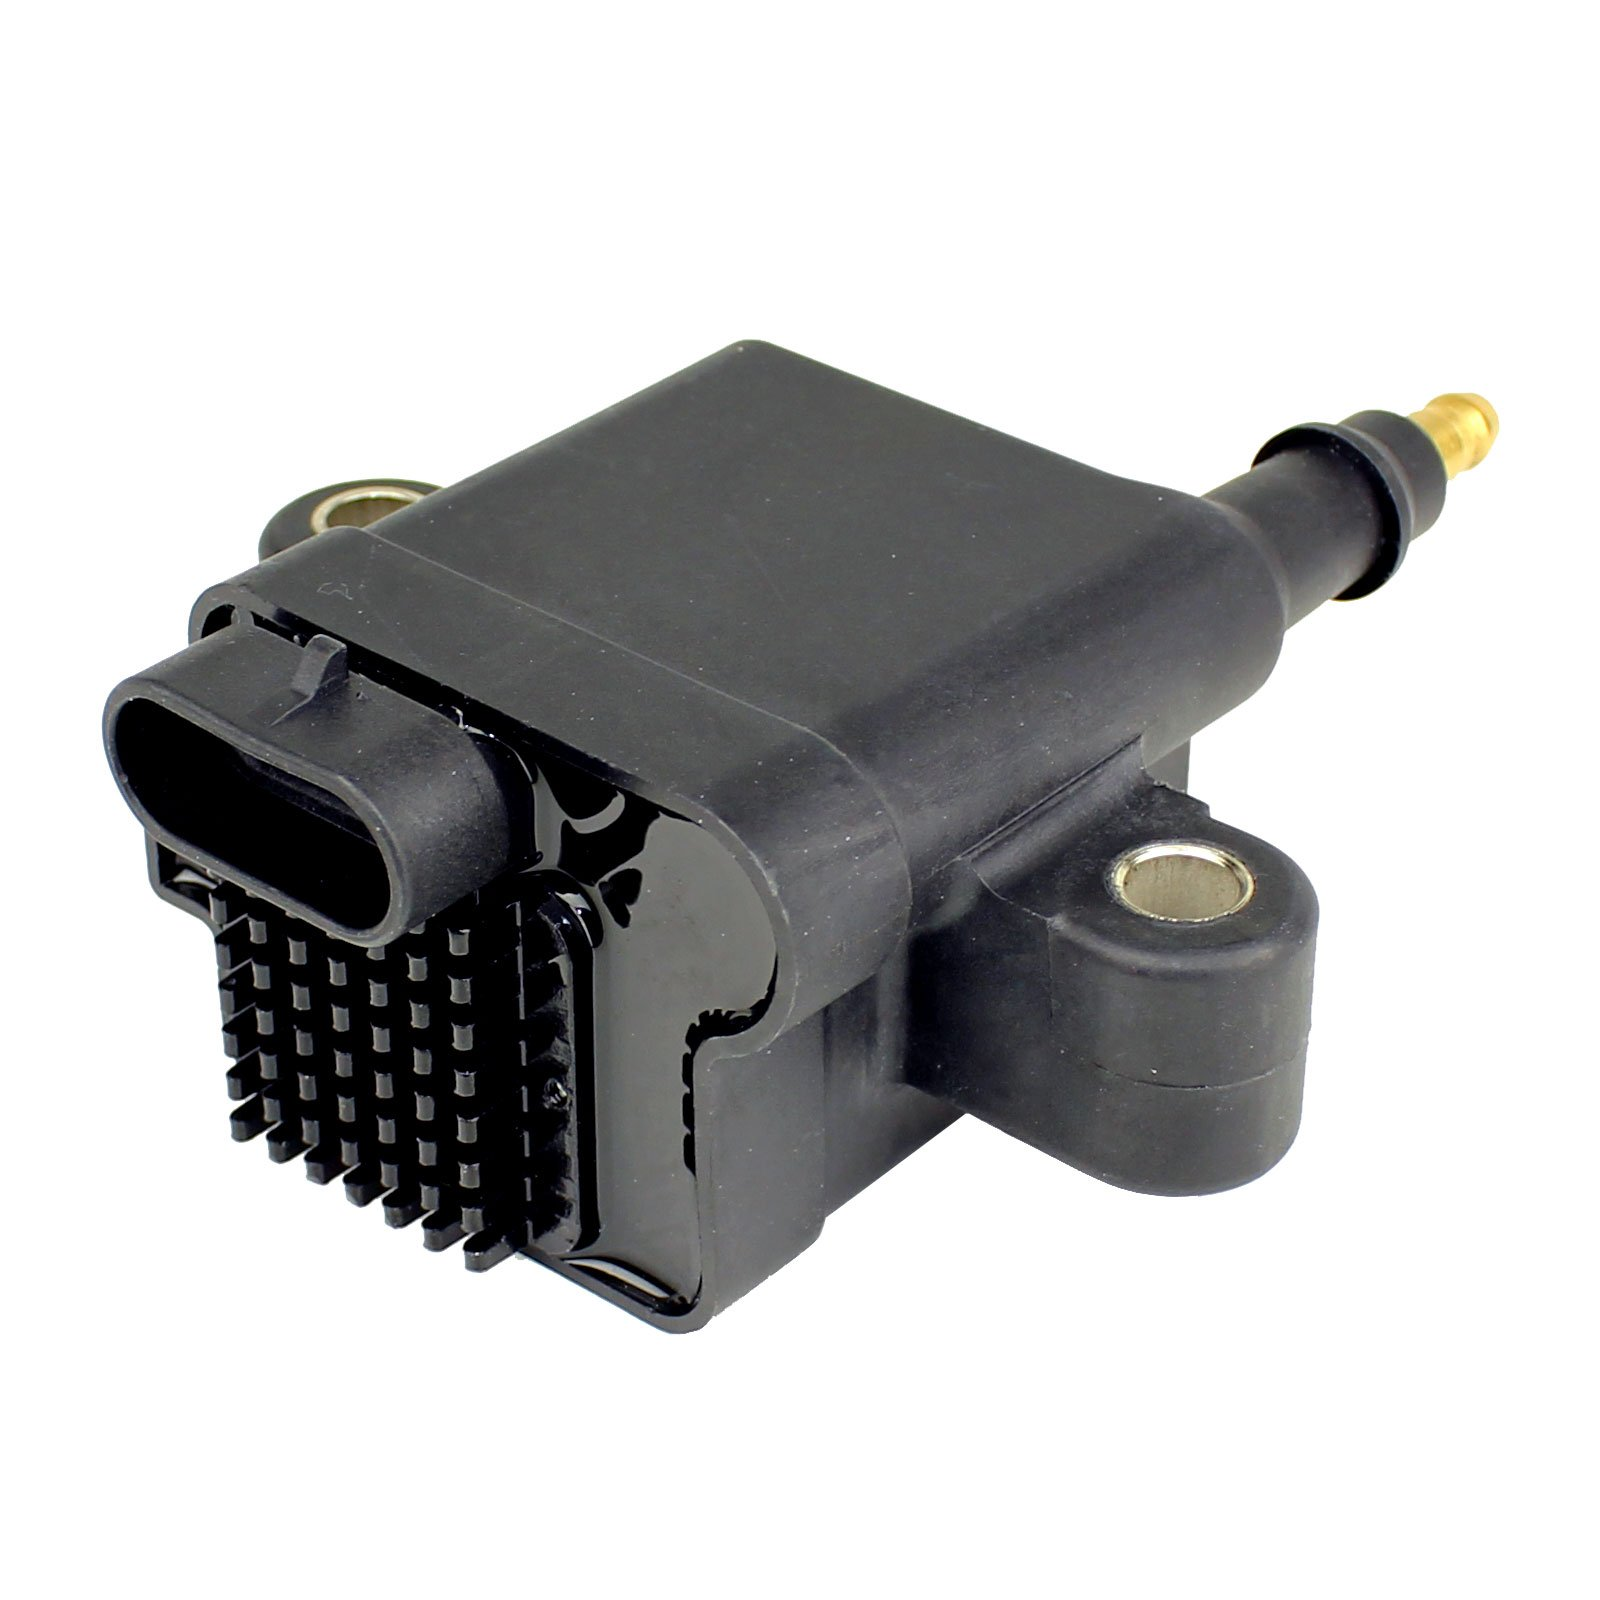 CALTRIC IGNITION COIL Fits MERCURY OUTBOARD 200XS 225XS 250XS 300XS DFI SPORT